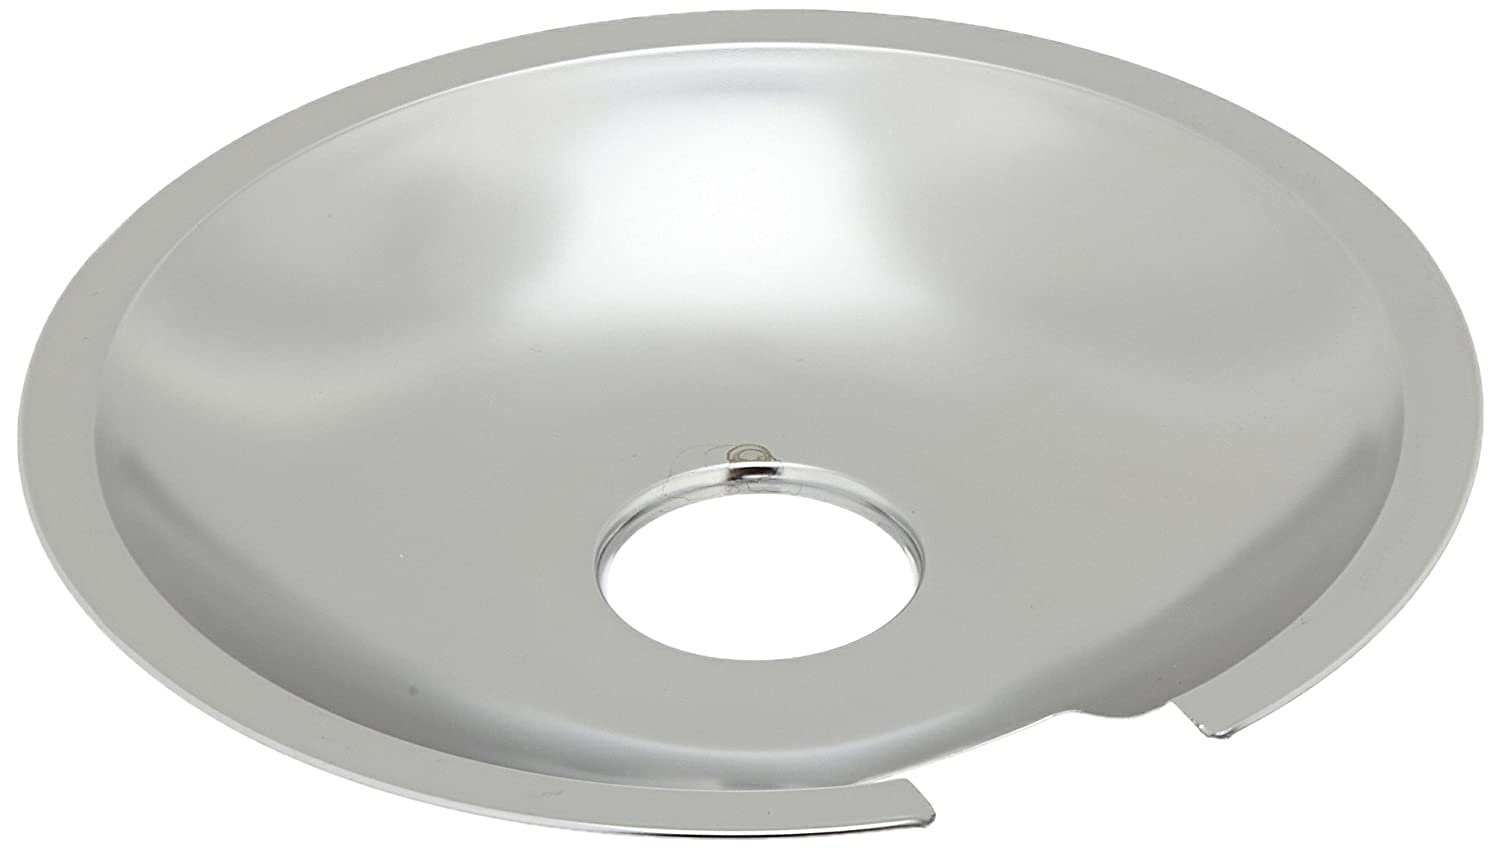 715878 - Jenn-Air Aftermarket Replacement Stove Range Oven Drip Bowl Pan